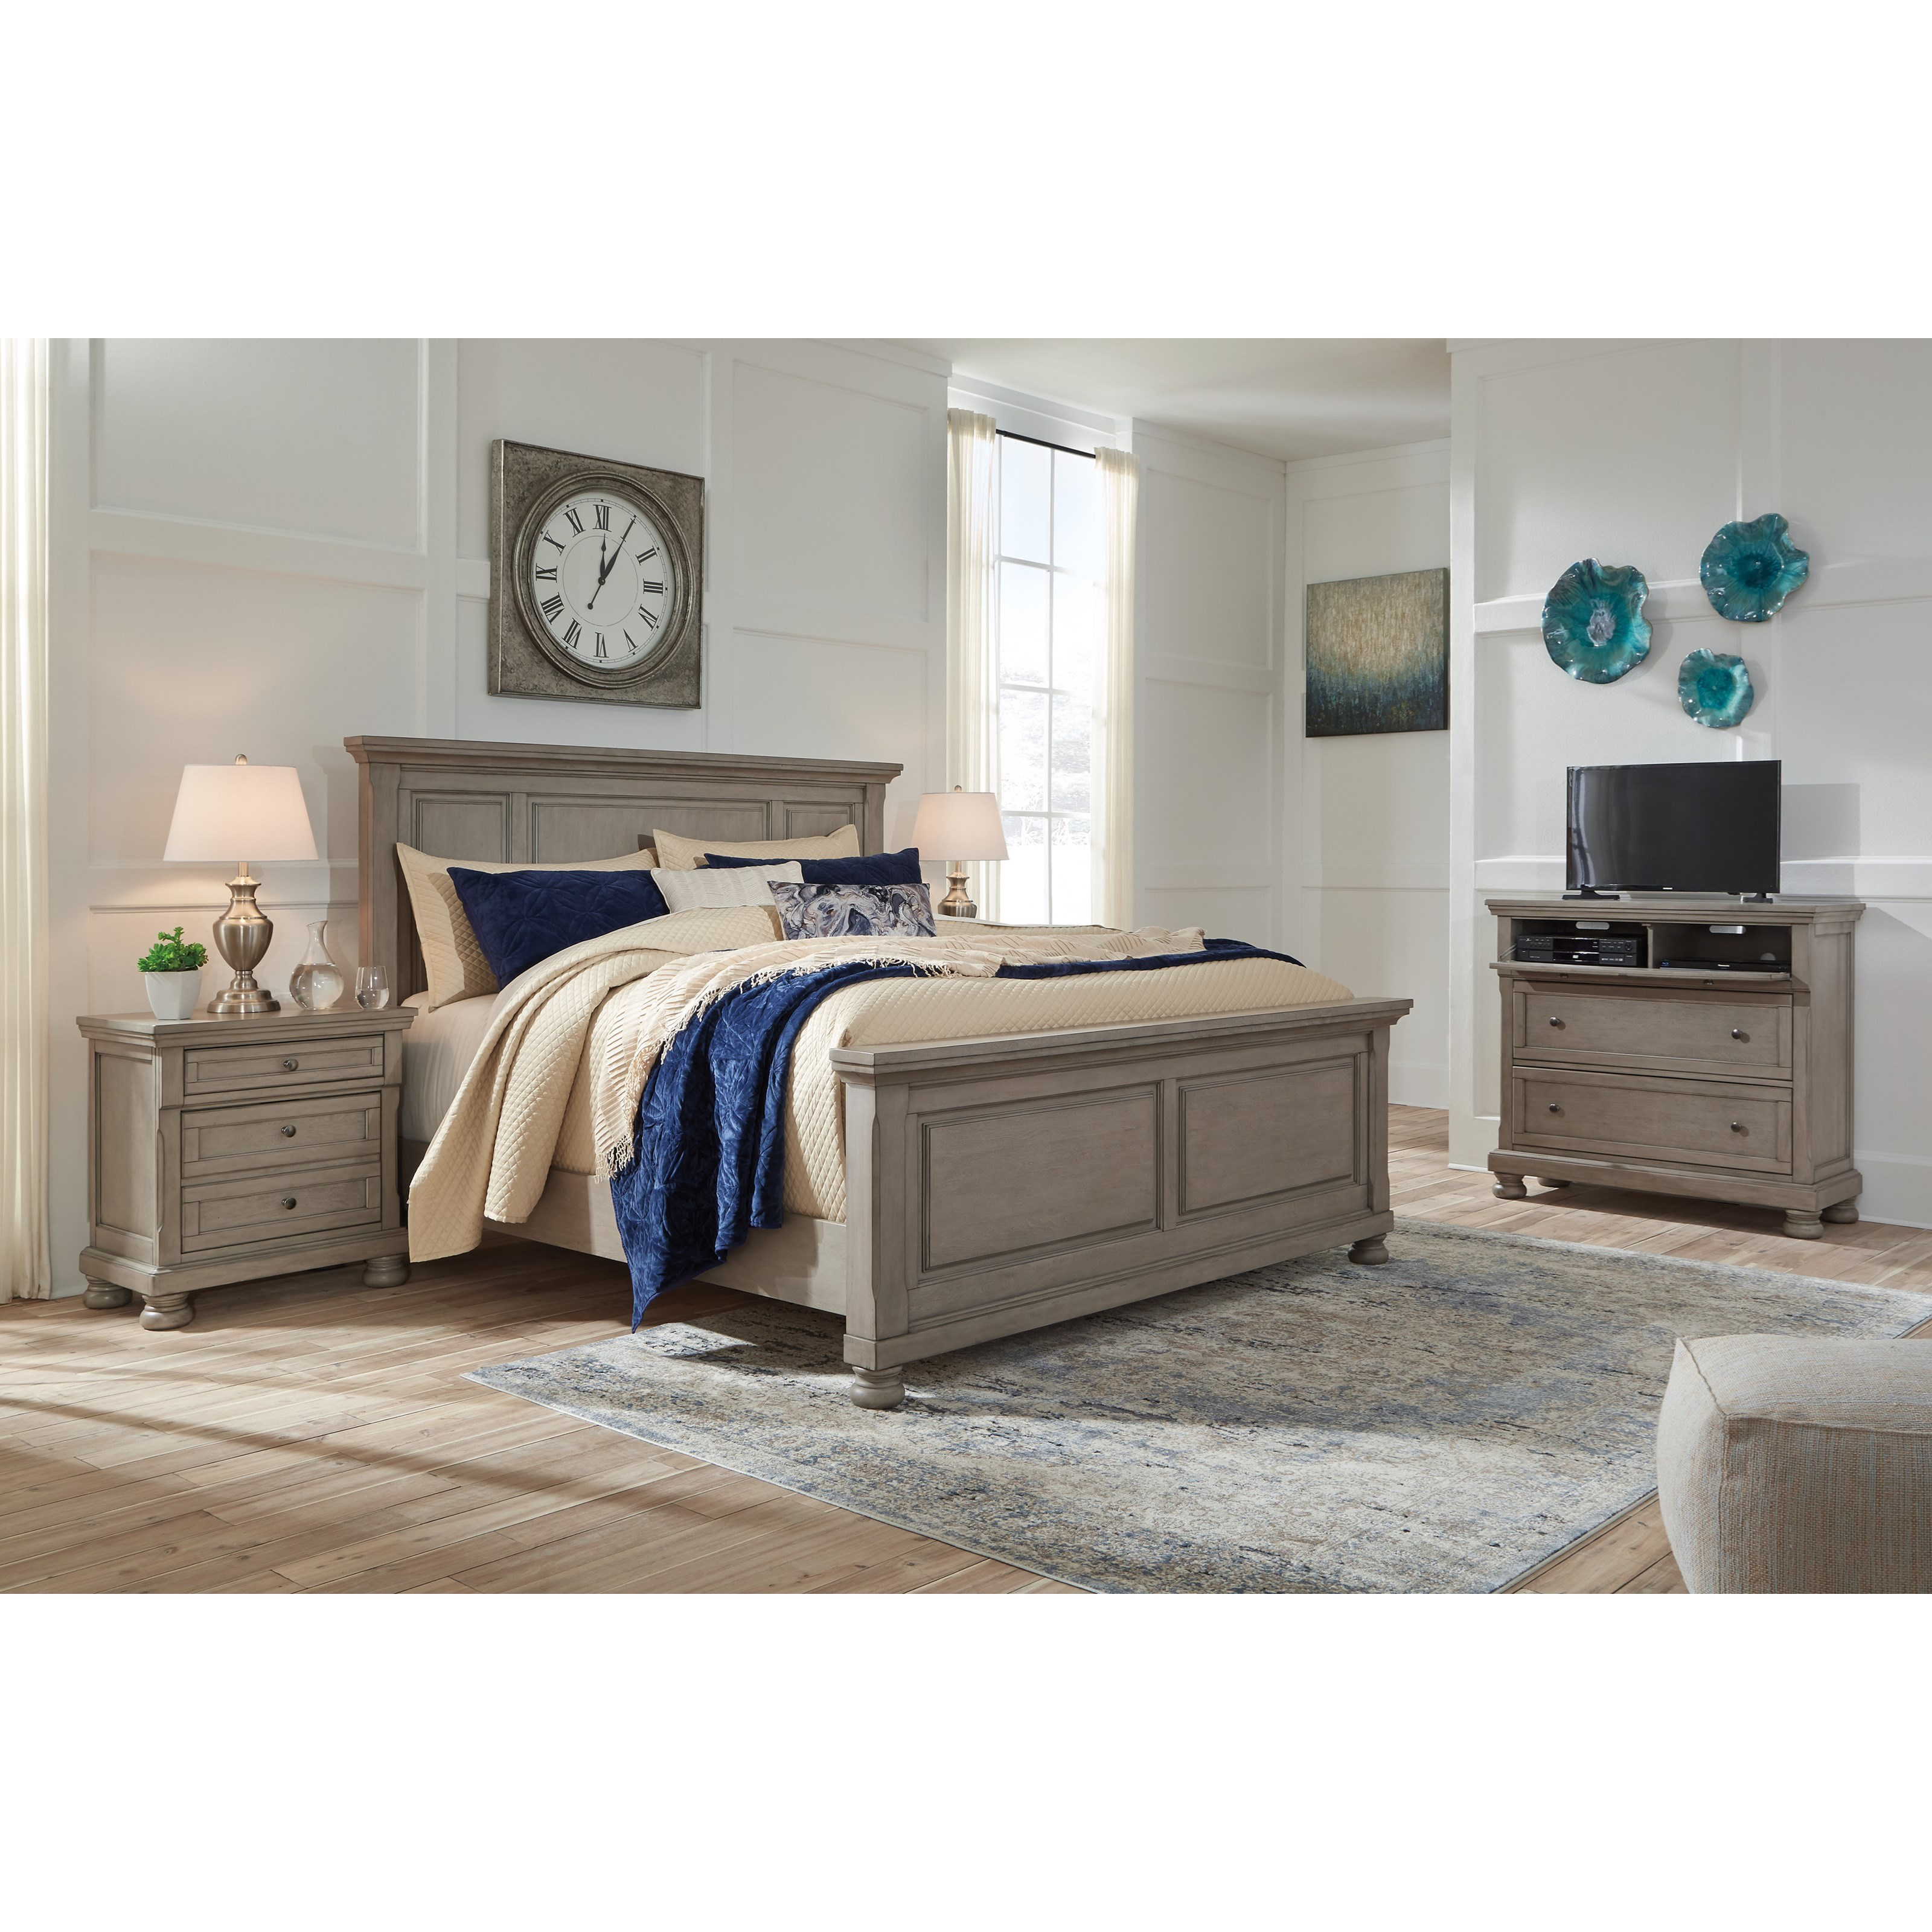 Lettner King Bedroom Group by Signature Design by Ashley at Standard Furniture